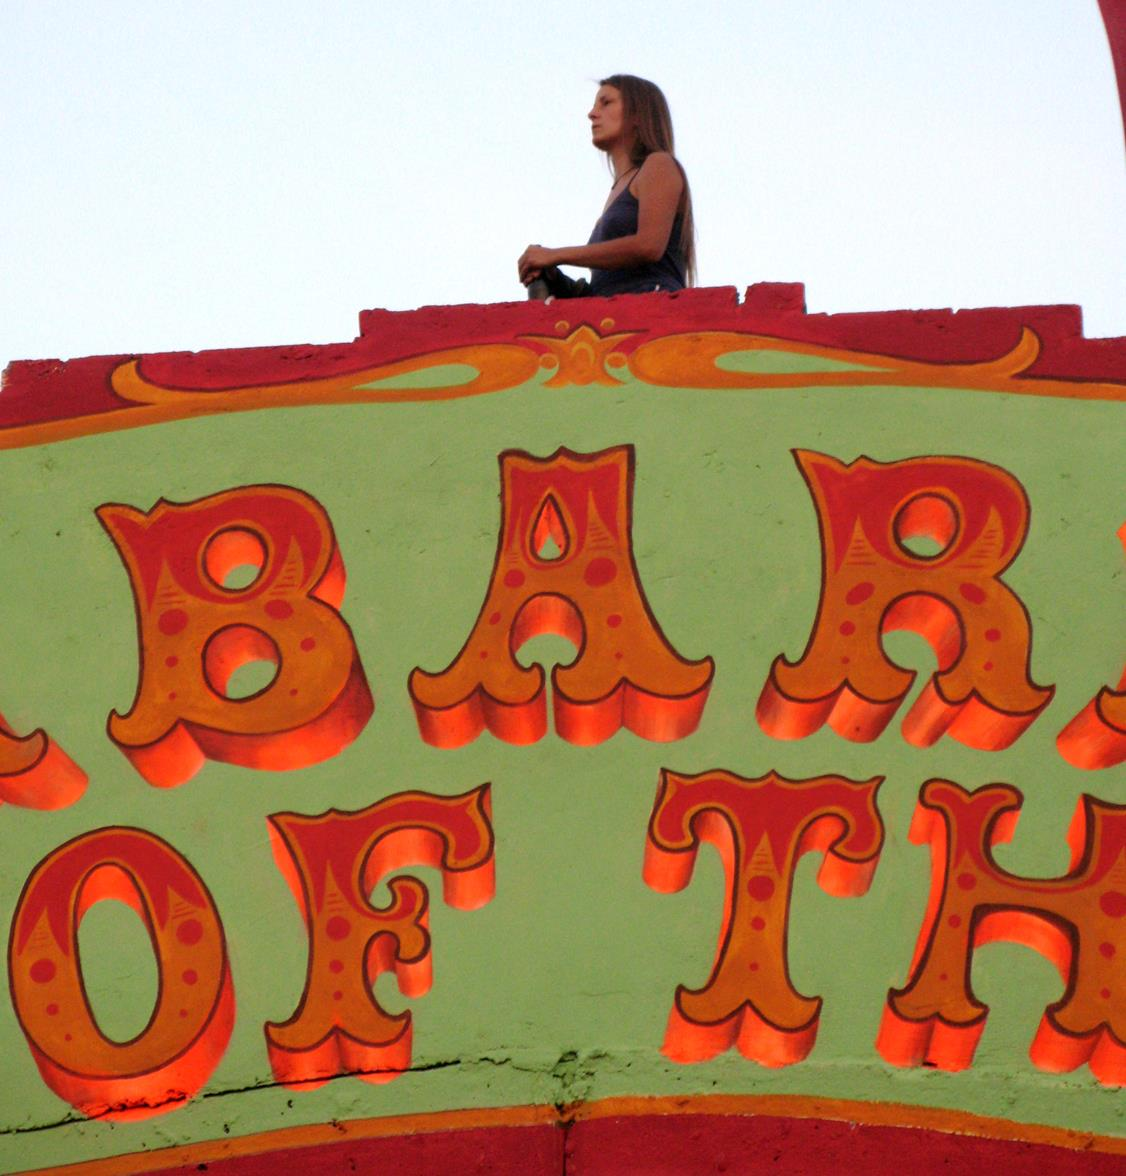 1 Cabaret At The End Of The World, Fusion Festival Berlin